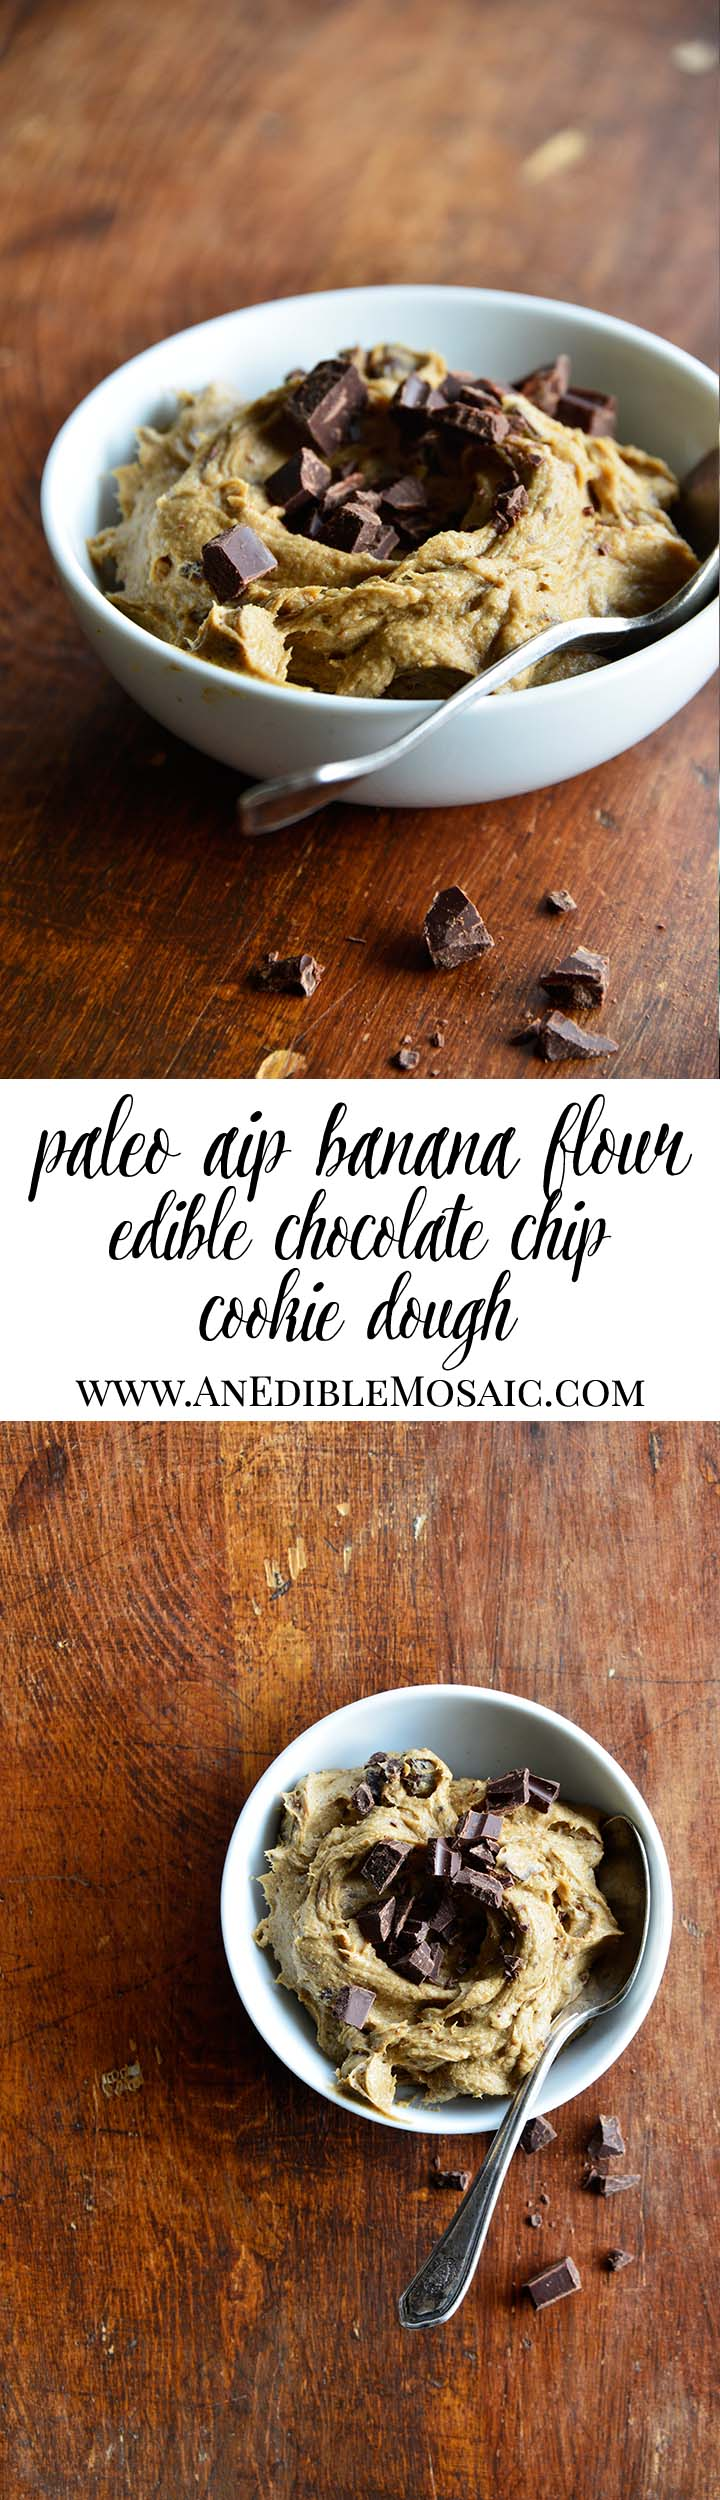 Paleo AIP Banana Flour Chocolate Chip Edible Cookie Dough Long Pin